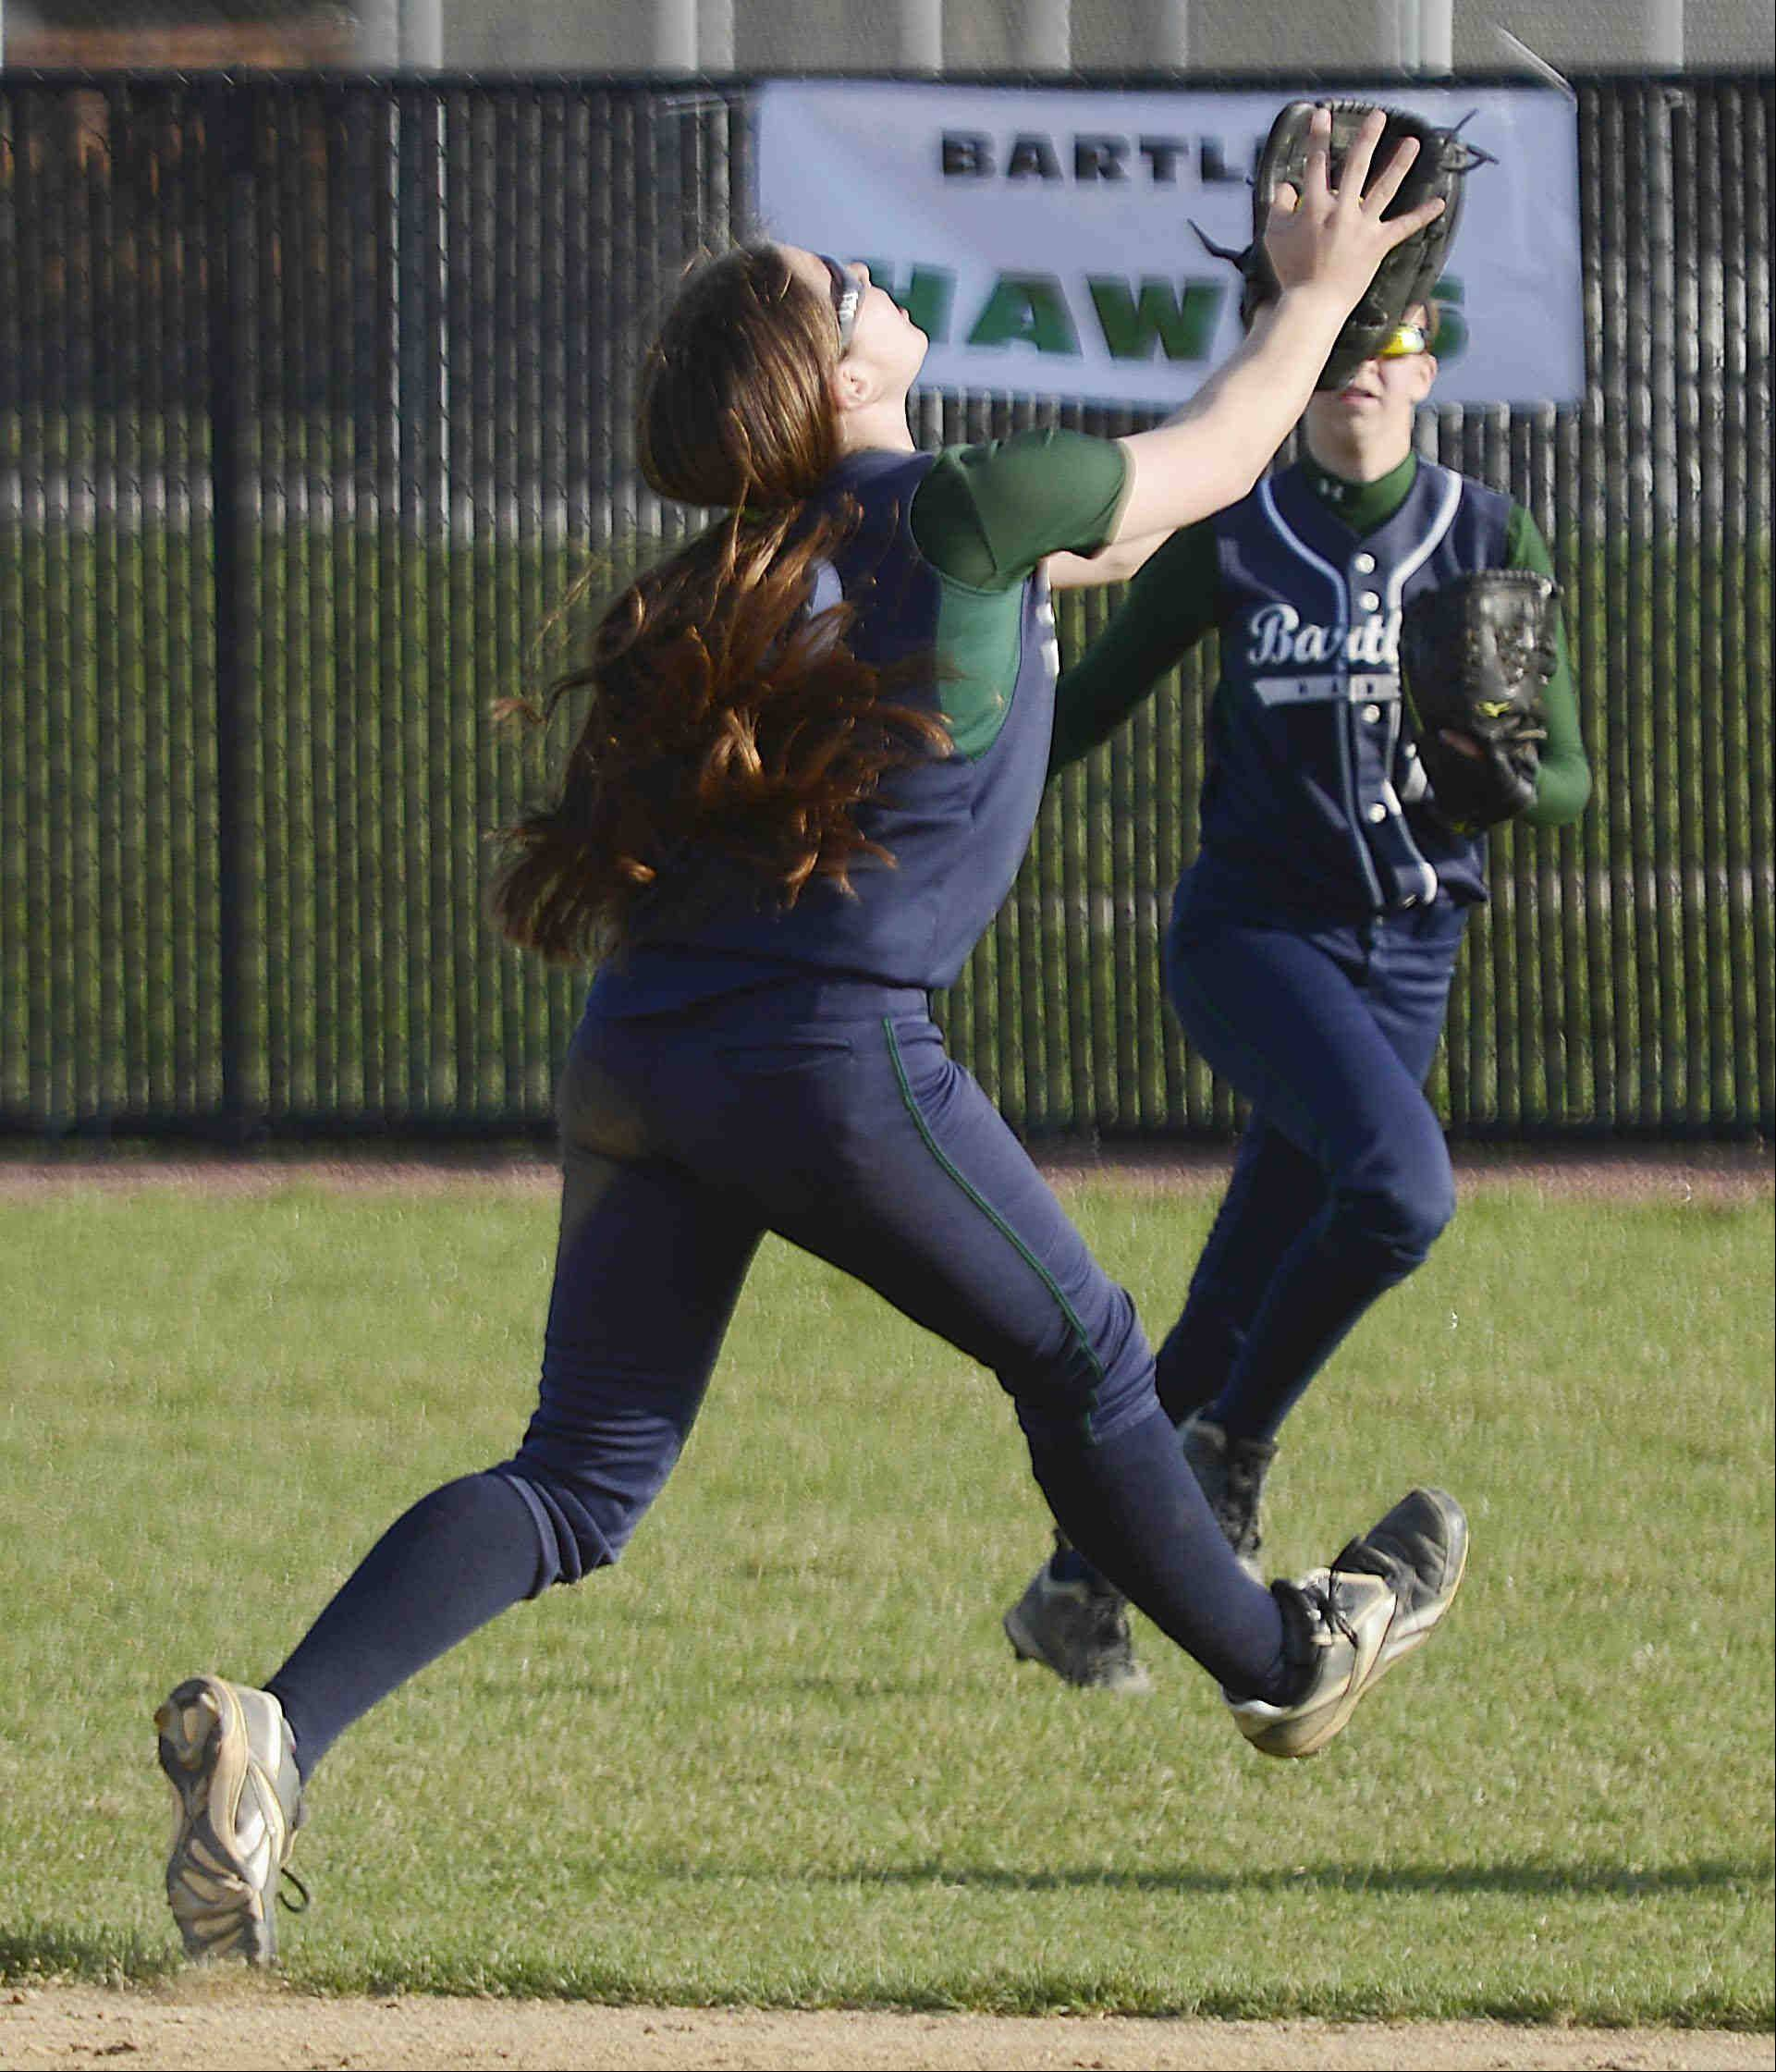 Bartlett shortstop Kayla Haberstich makes and over-the-shoulder catch on a pop up by St. Charles North's Abby Howlett for the first out of the seventh inning Monday in St. Charles.